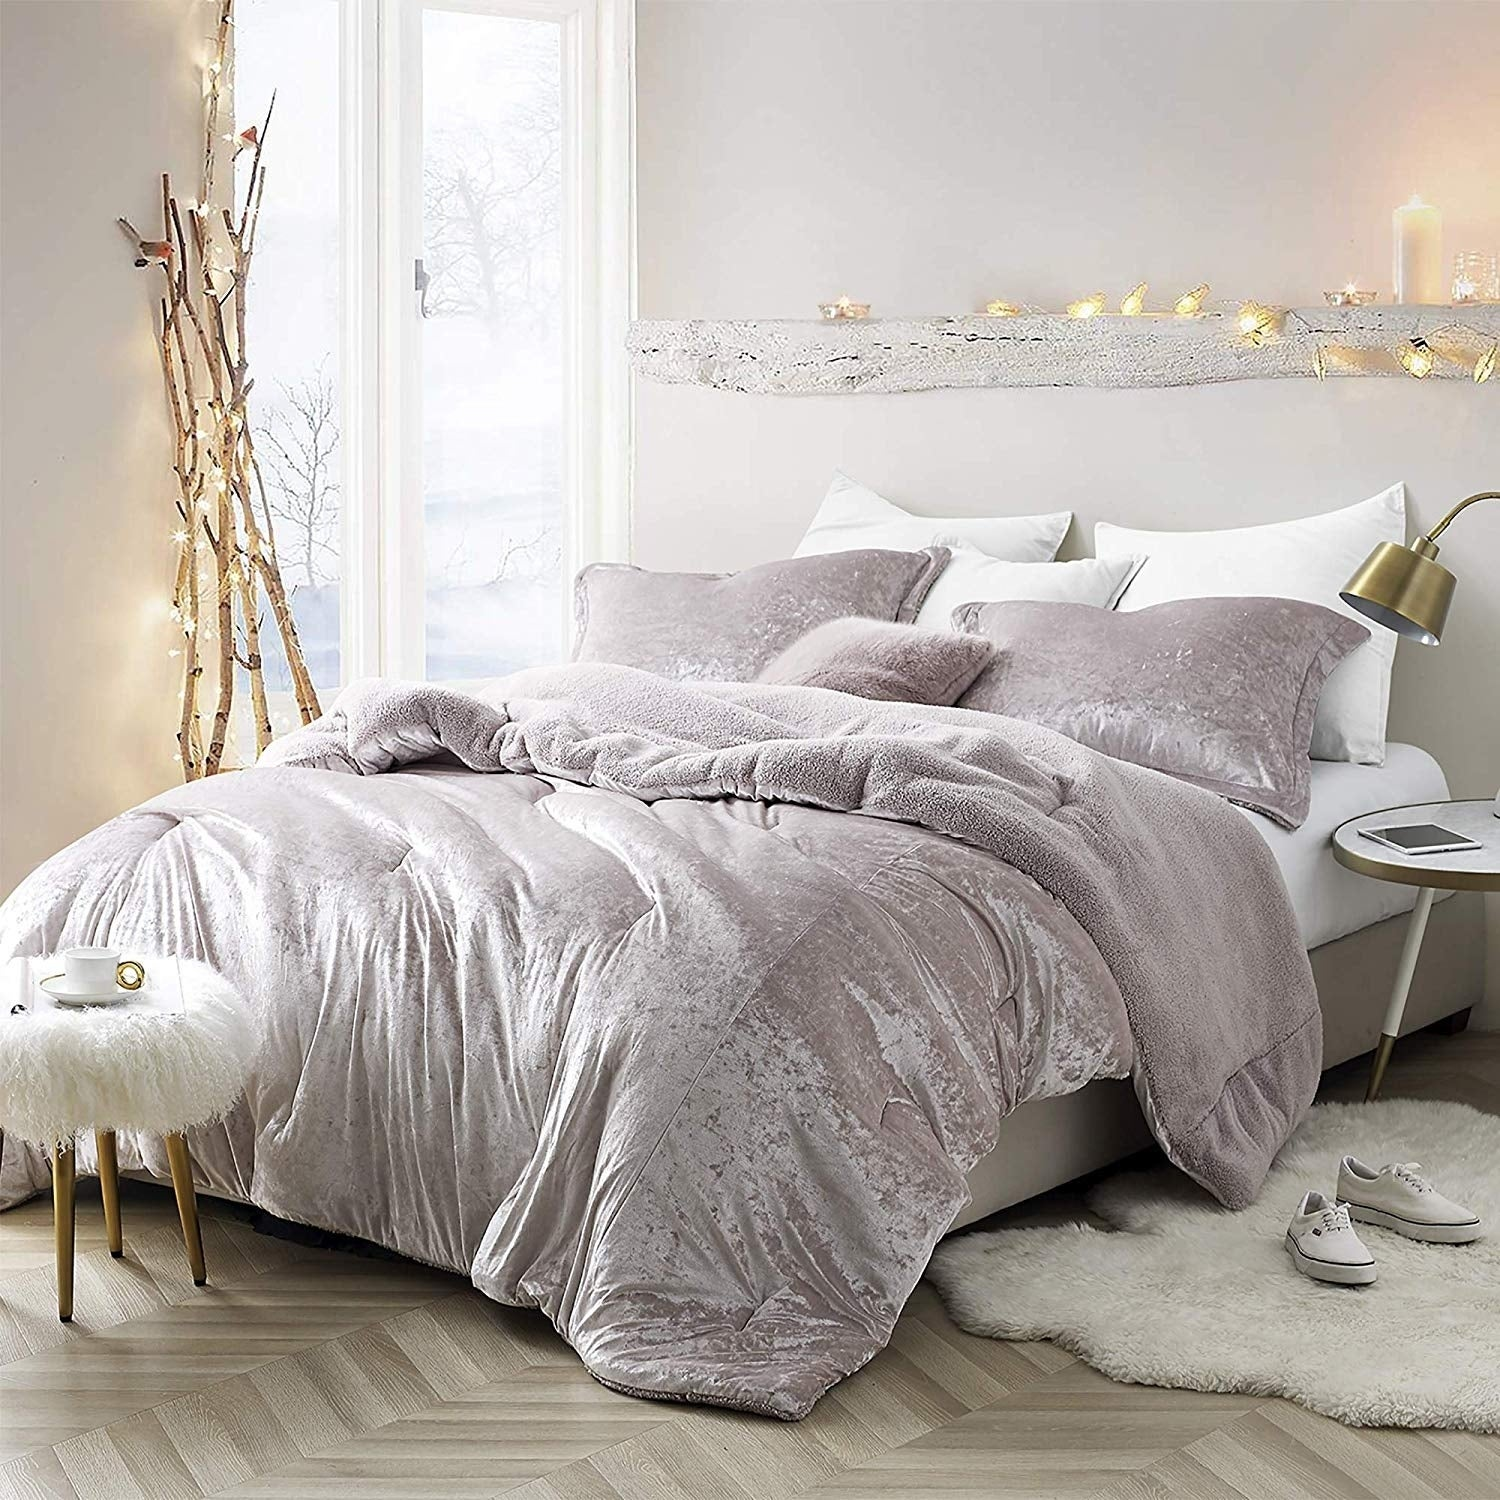 Silver Orchid Quirk Oversized Champagne Pink Comforter Overstock 26280395 King Sham King